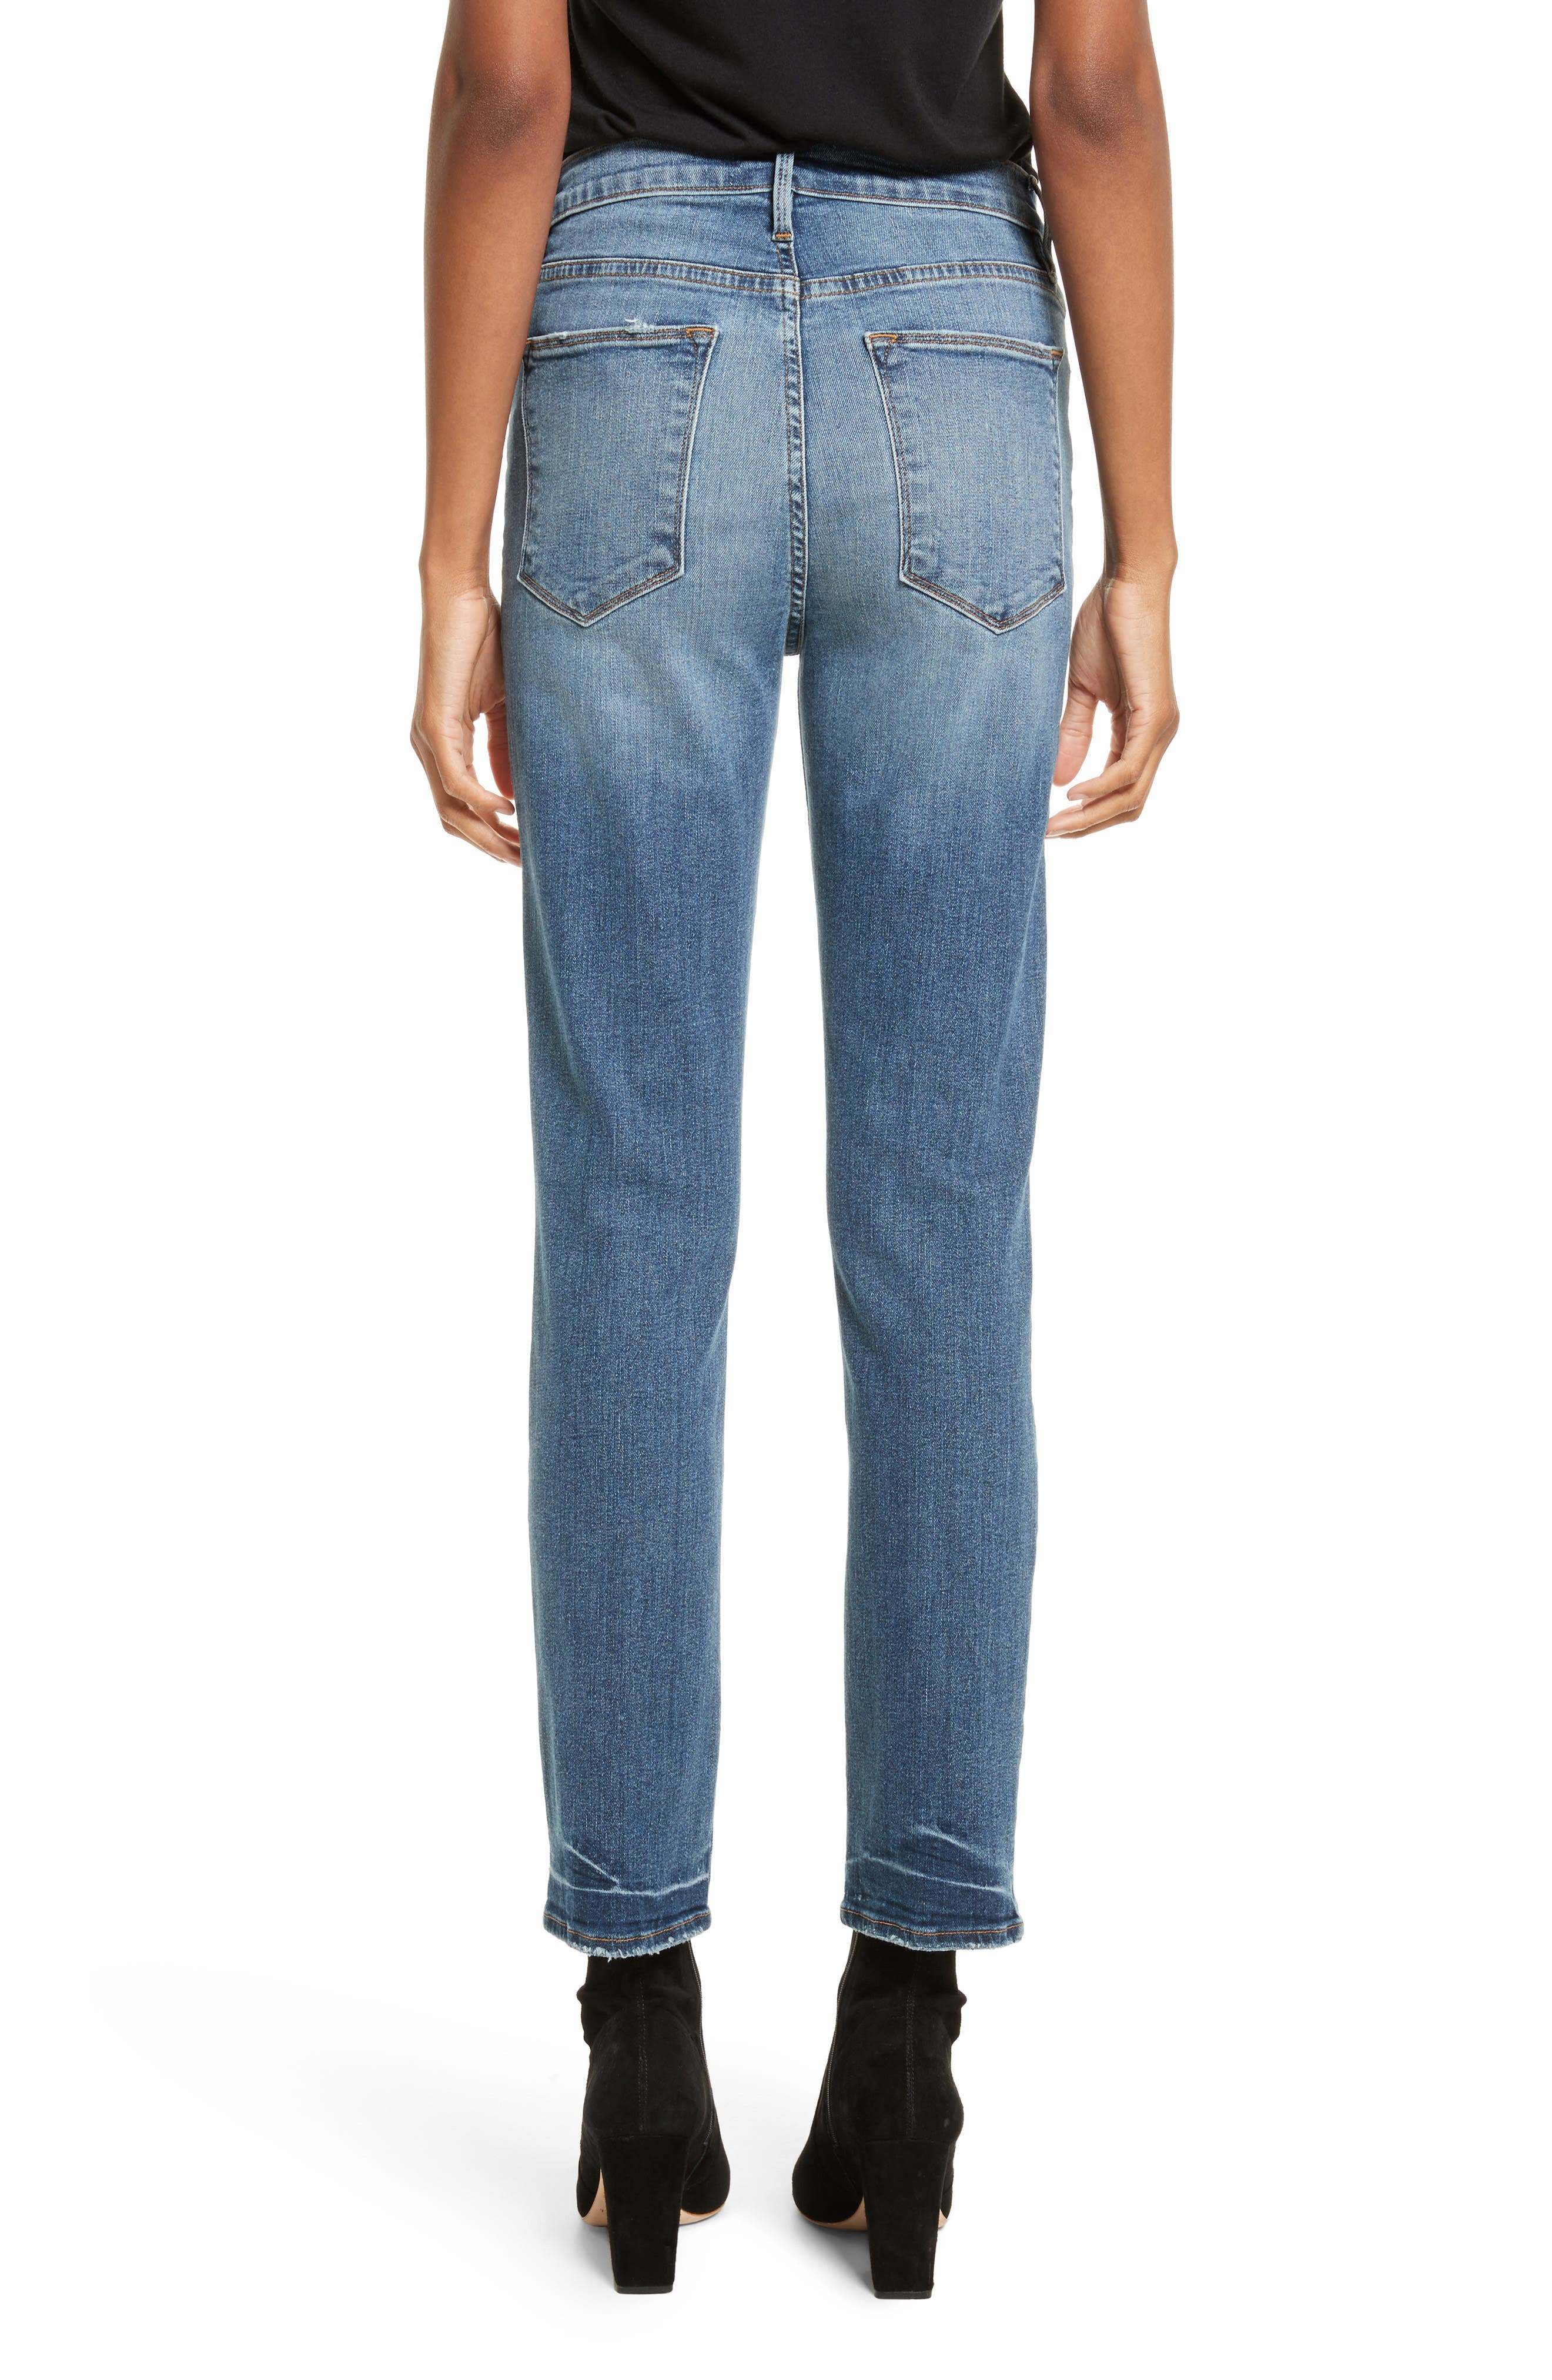 Le High Straight High Waist Crop Jeans,                             Alternate thumbnail 4, color,